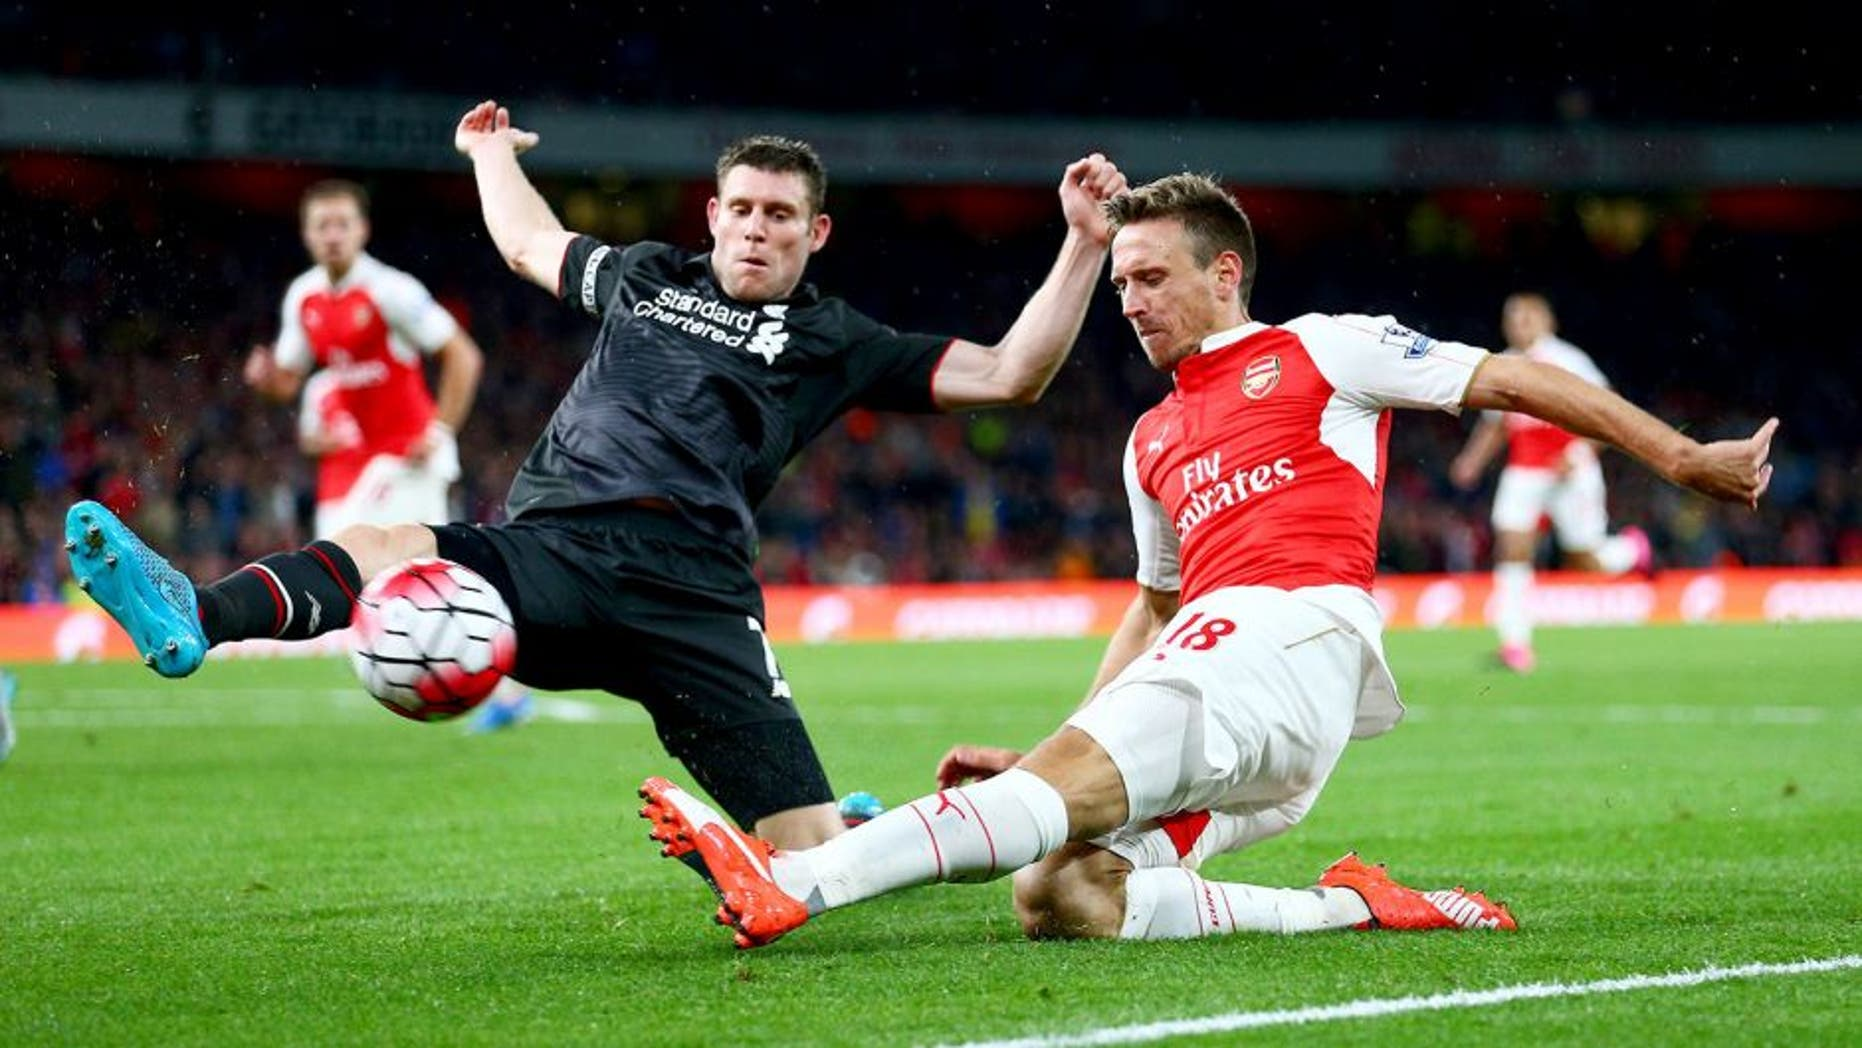 LONDON, ENGLAND - AUGUST 24: Nacho Monreal of Arsenal is closed down by James Milner of Liverpool during the Barclays Premier League match between Arsenal and Liverpool at Emirates Stadium on August 24, 2015 in London, England. (Photo by Clive Mason/Getty Images)